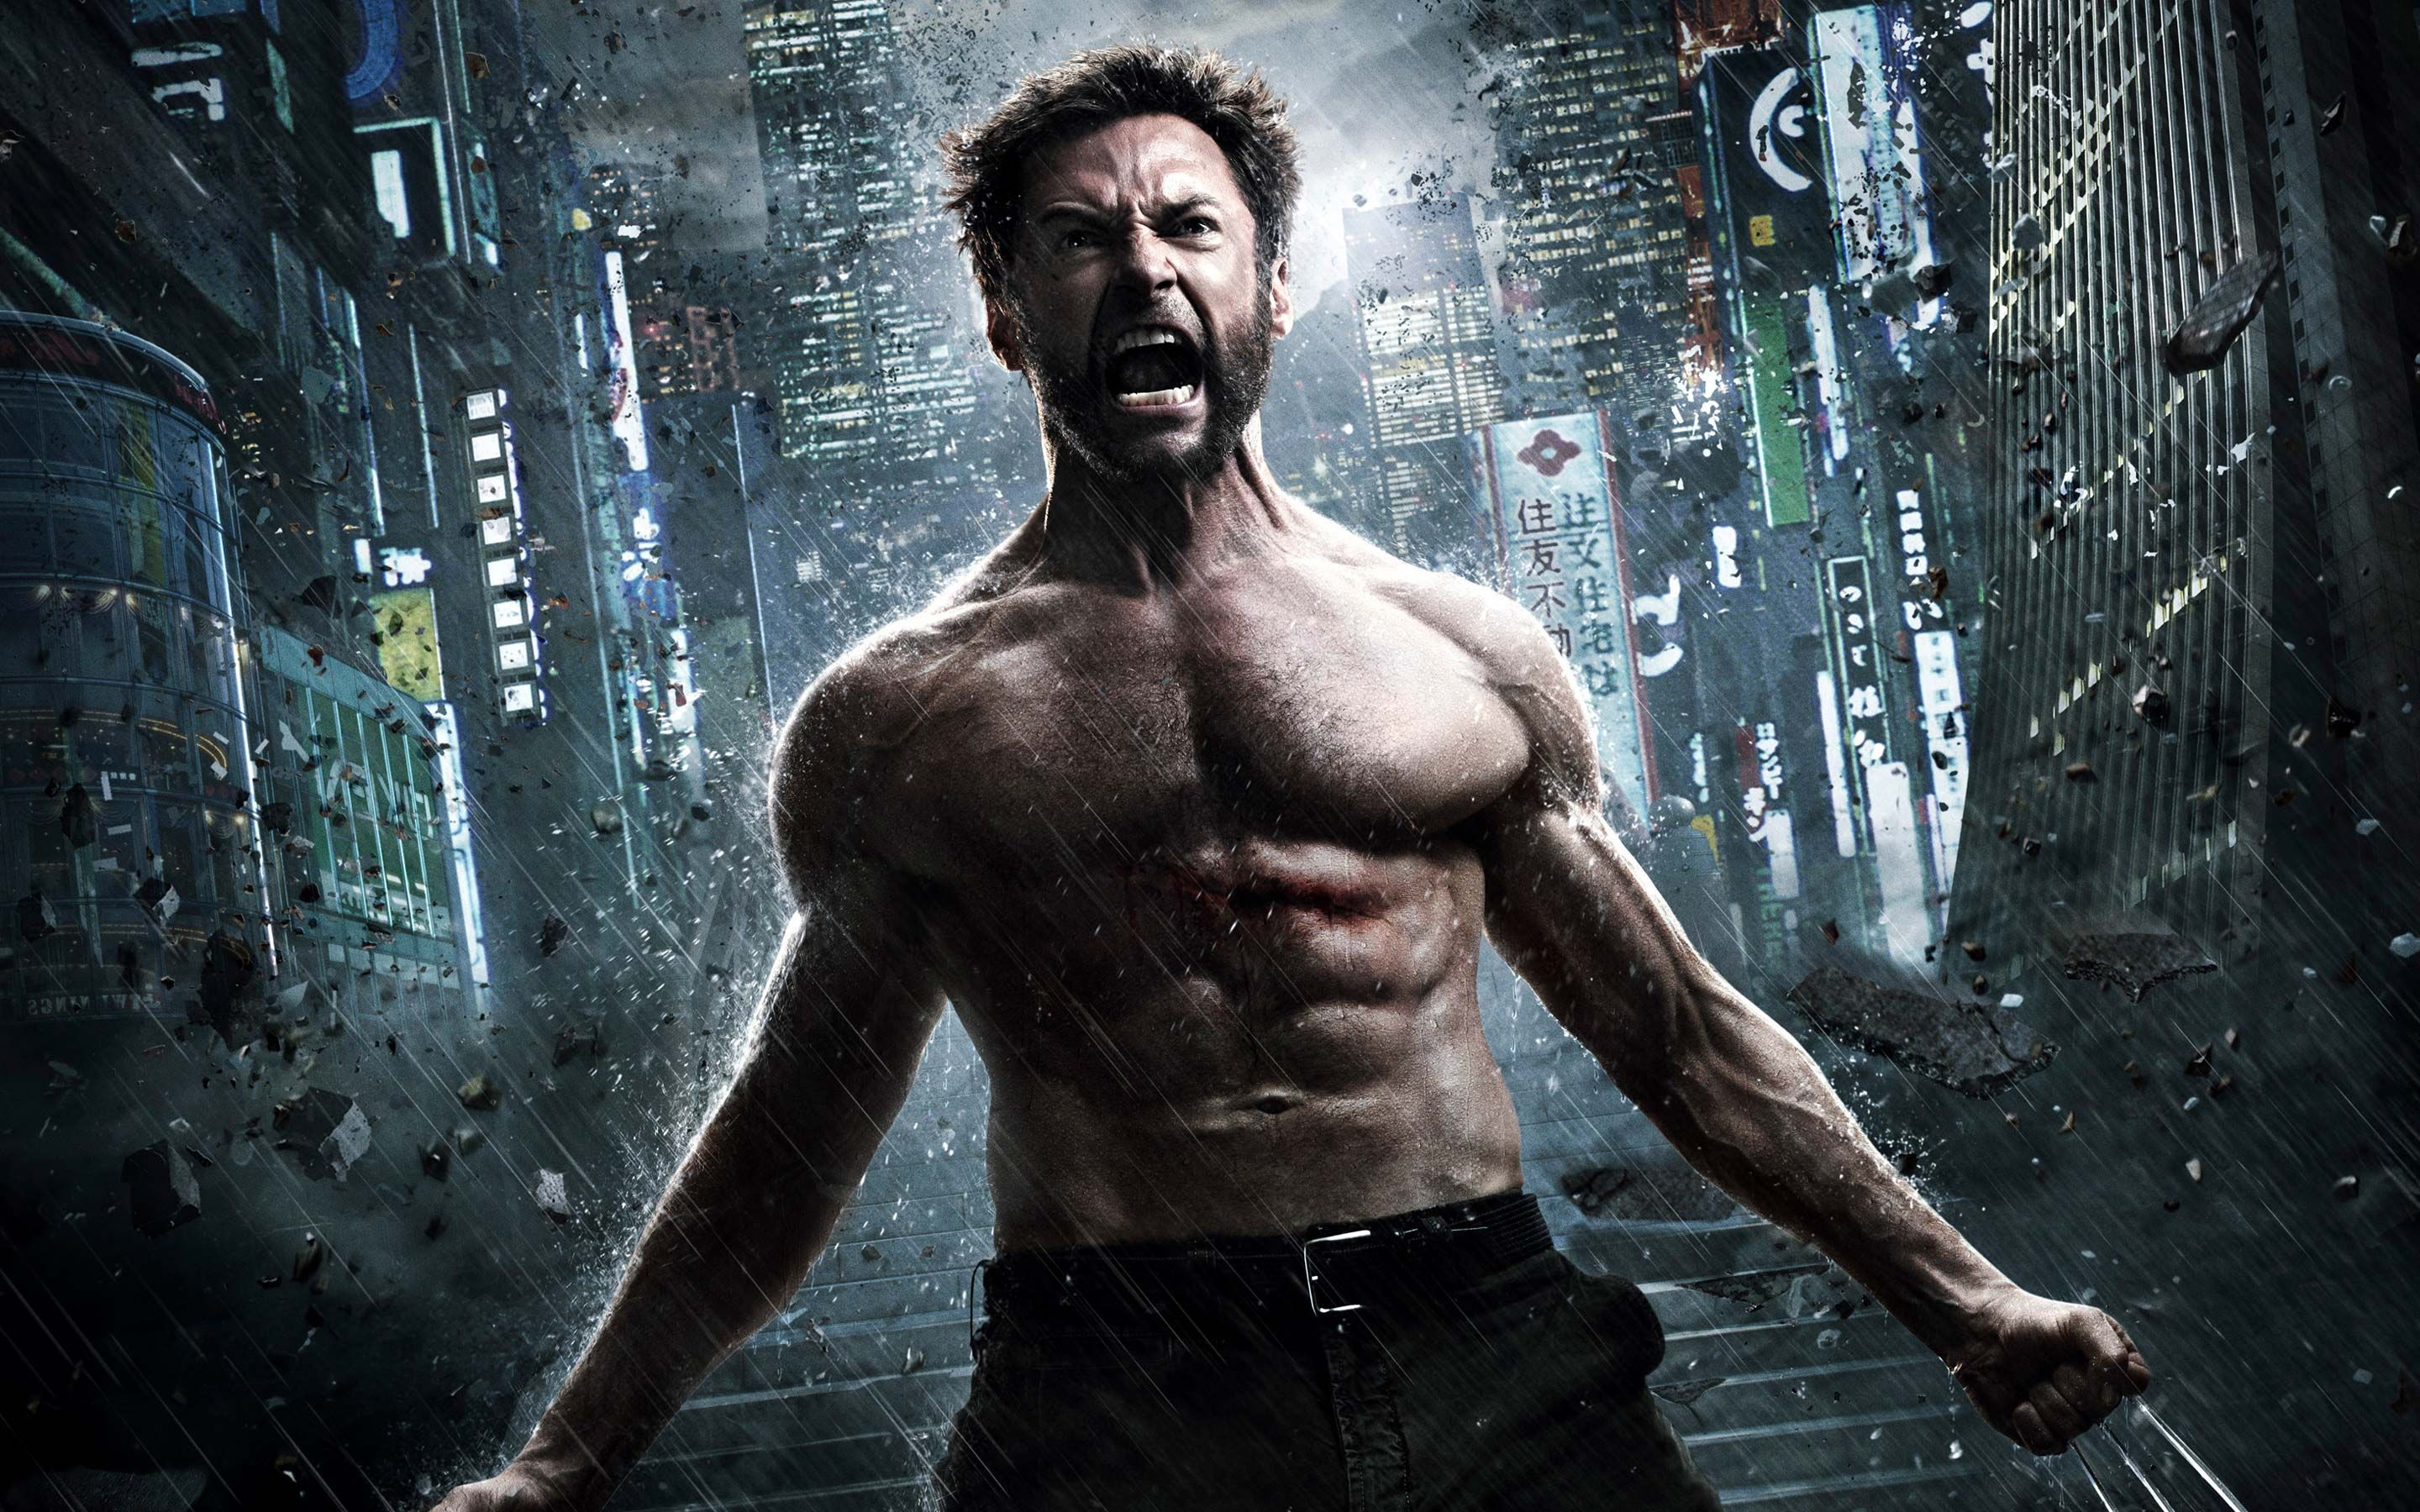 Hugh Jackman X Men Wolverine Wallpapers Hd Collection The